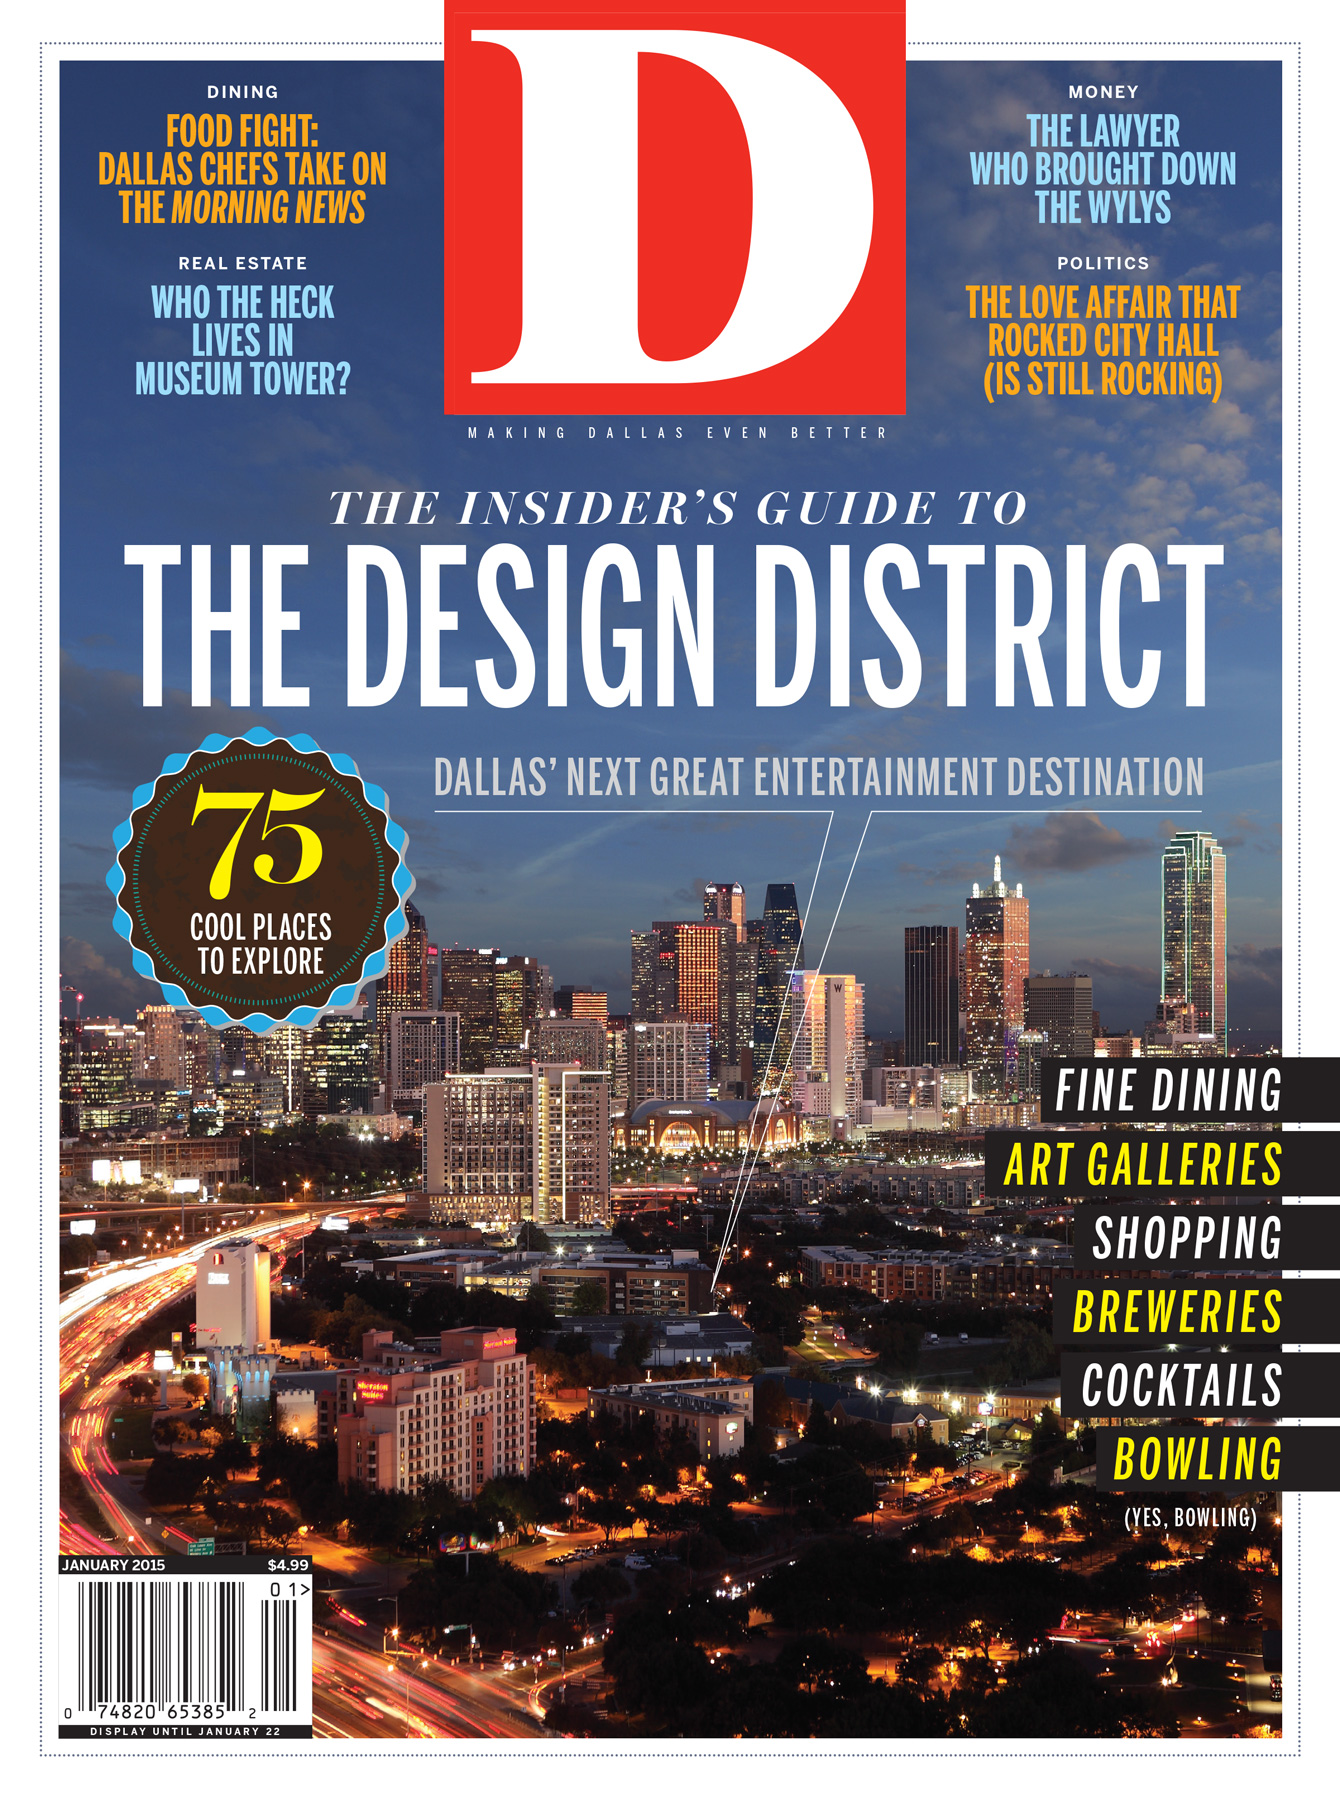 January 2015 cover